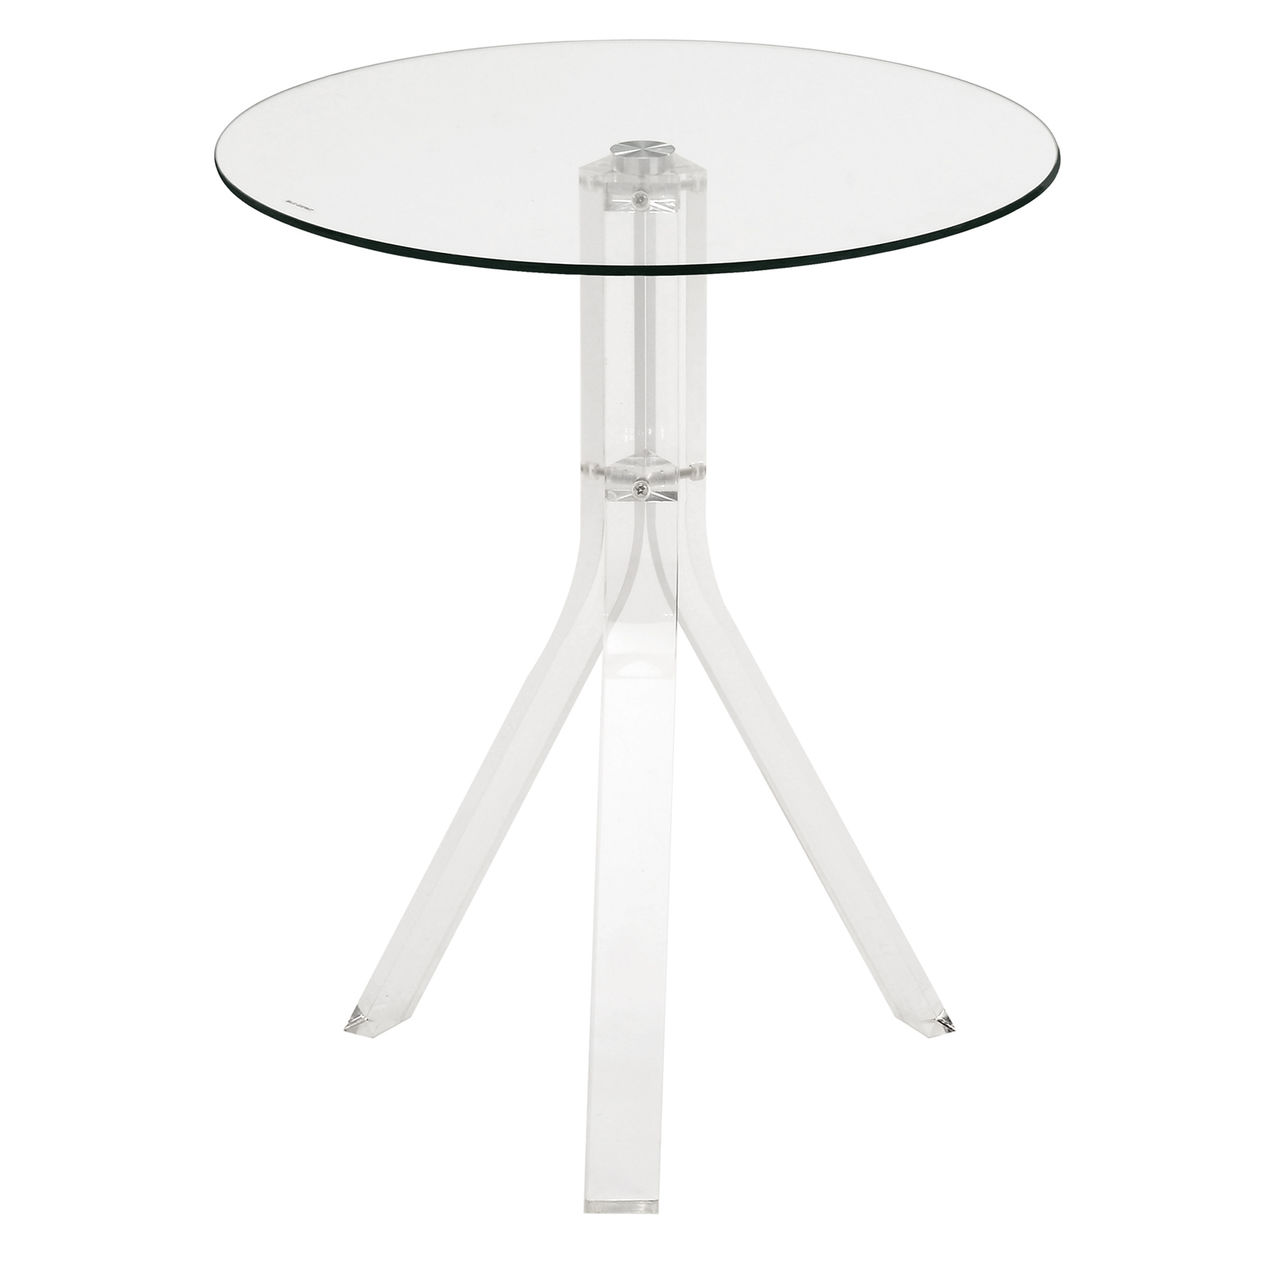 acrylic round accent table home solar metal rectangular patio furniture covers target windham coffee runner mirrored glass lamp tables reading unique accessories winsome with